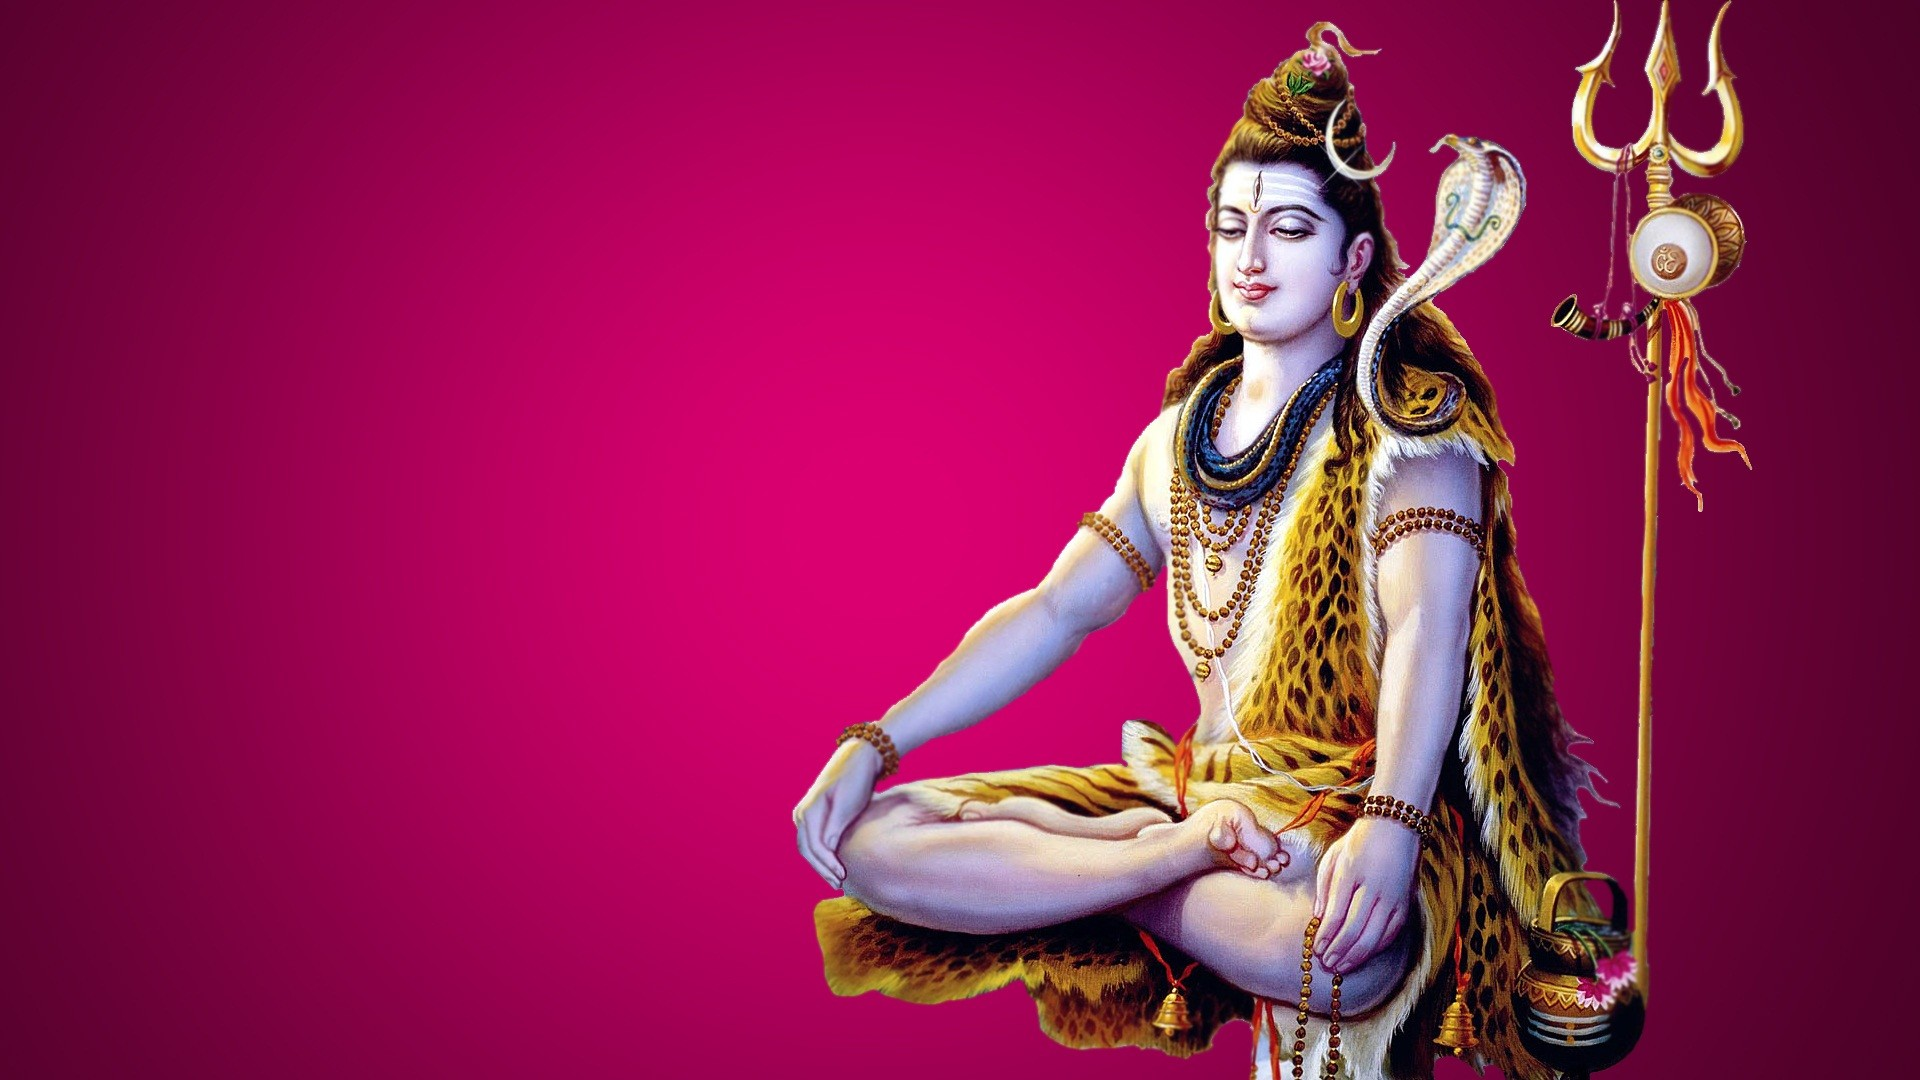 Lord Shiva Wallpapers HD with High Definition Wallpaper Resolution